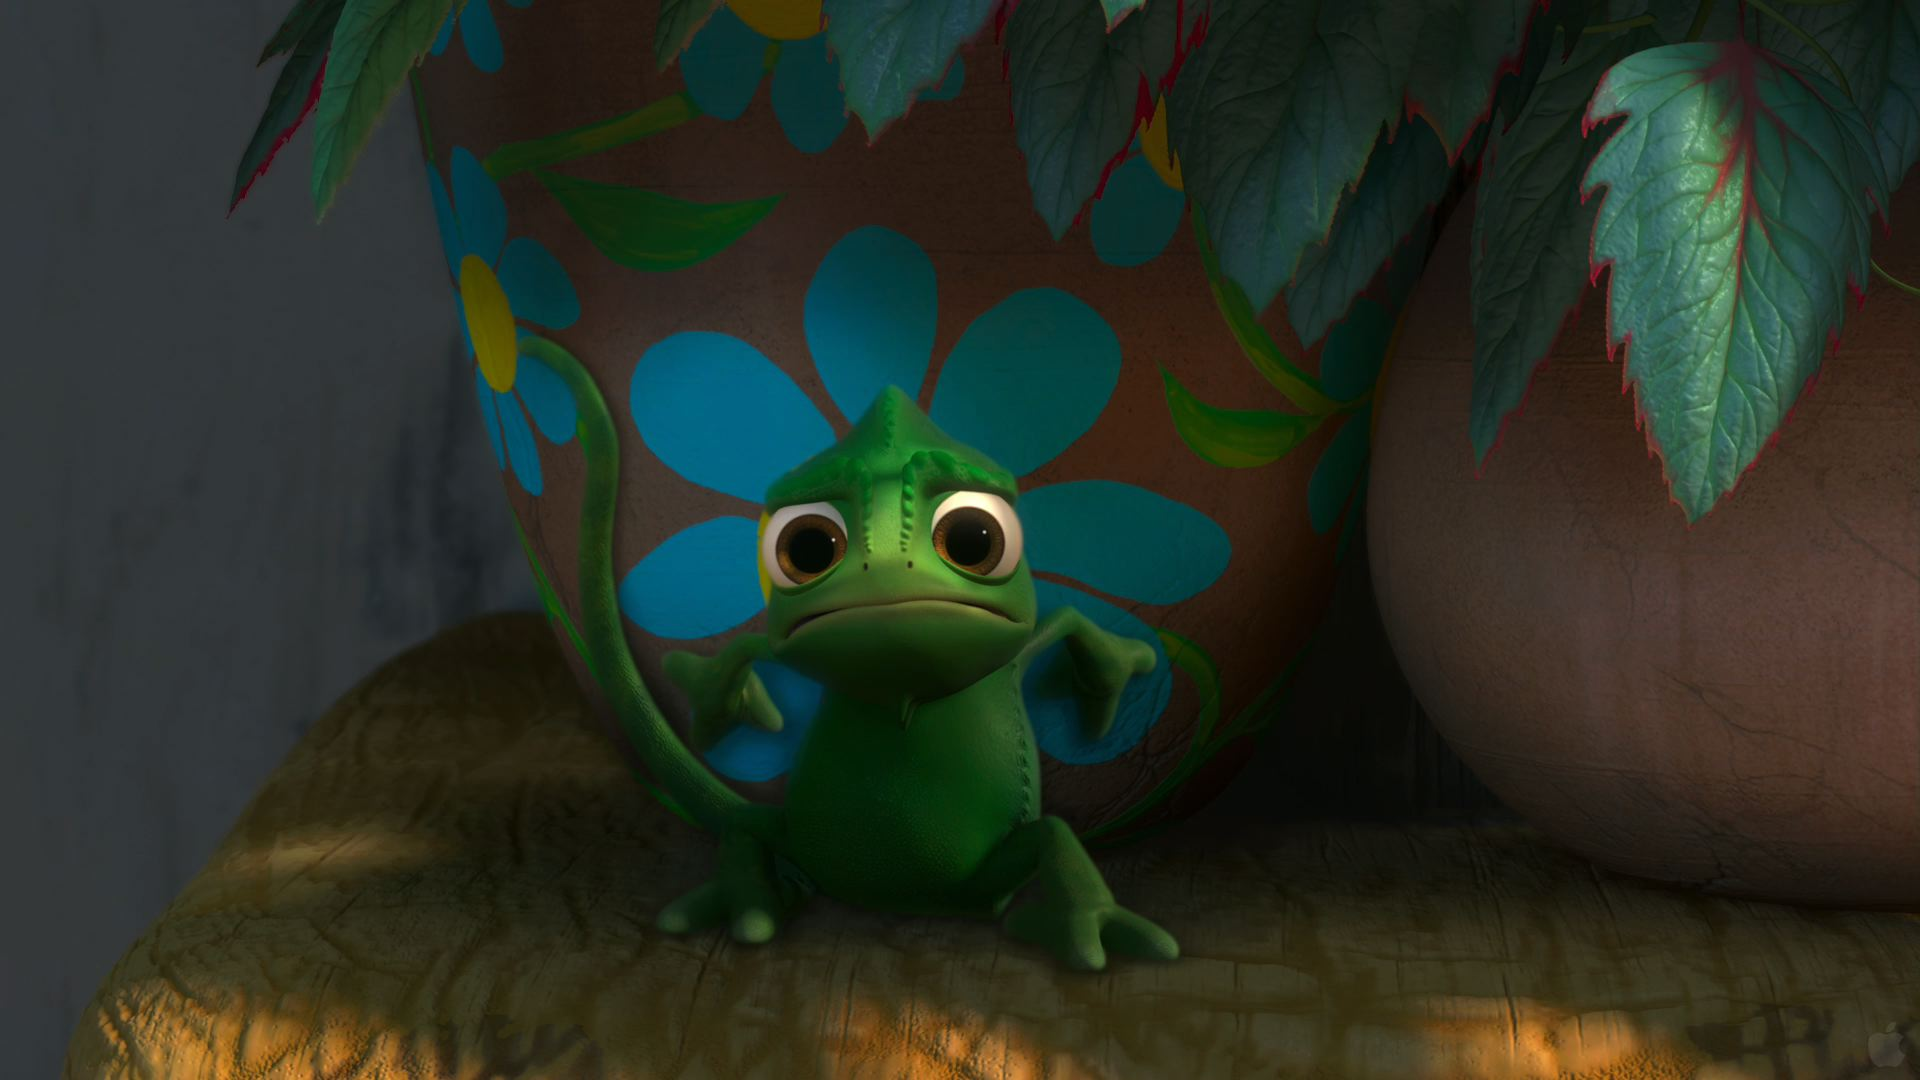 Pascal The Cute Chameleon From Disney S Tangled Desktop Wallpaper